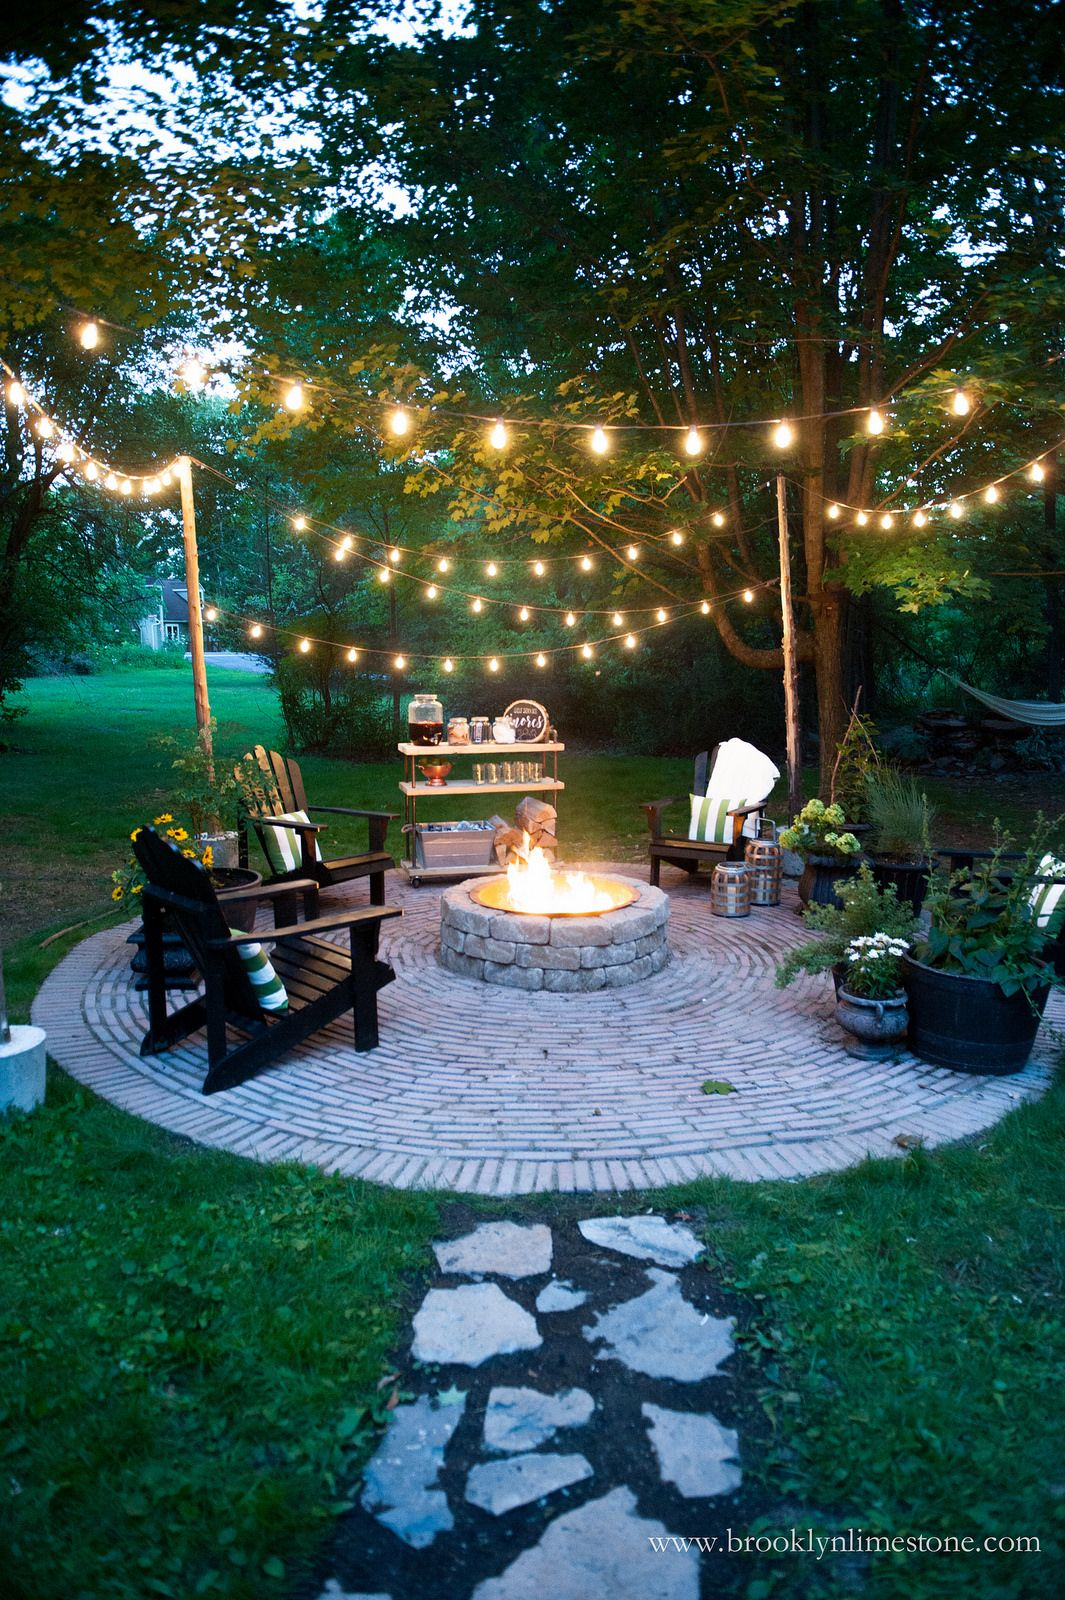 18 Fire Pit Ideas For Your Backyard Home Decor Ideas Backyard pertaining to Ideas For A Backyard